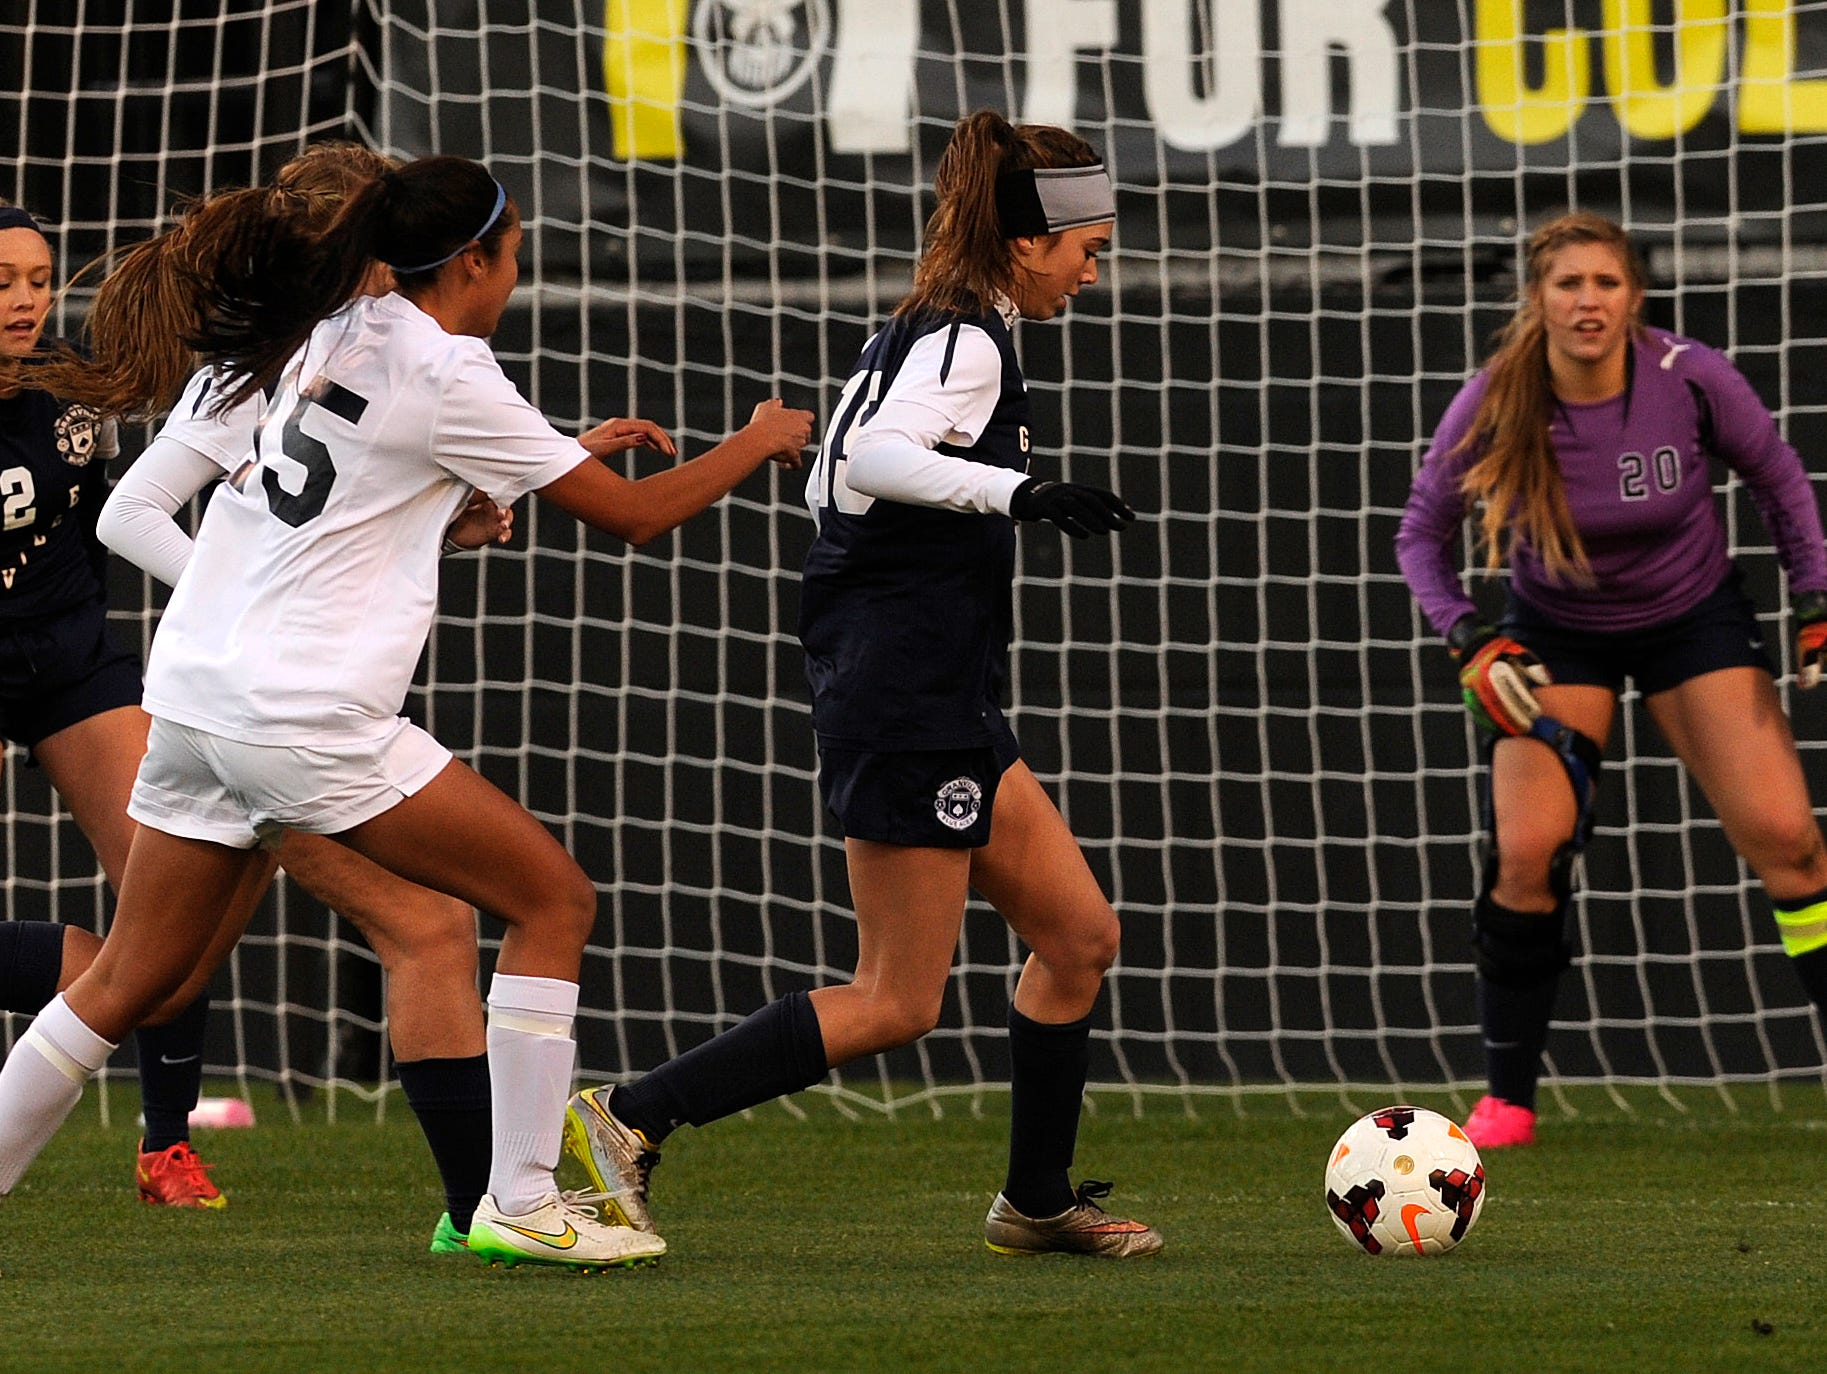 Granville junior defender Reilly Welles steals the ball from Akron Hoban forward Jessica Wong as goalkeeper Tori Long stands ready in the net. The Blue Aces fell 2-1 to Akron Hoban in overtime in the state final on Friday, Nov. 13, 2015, at Mapfre Stadium in Columbus.